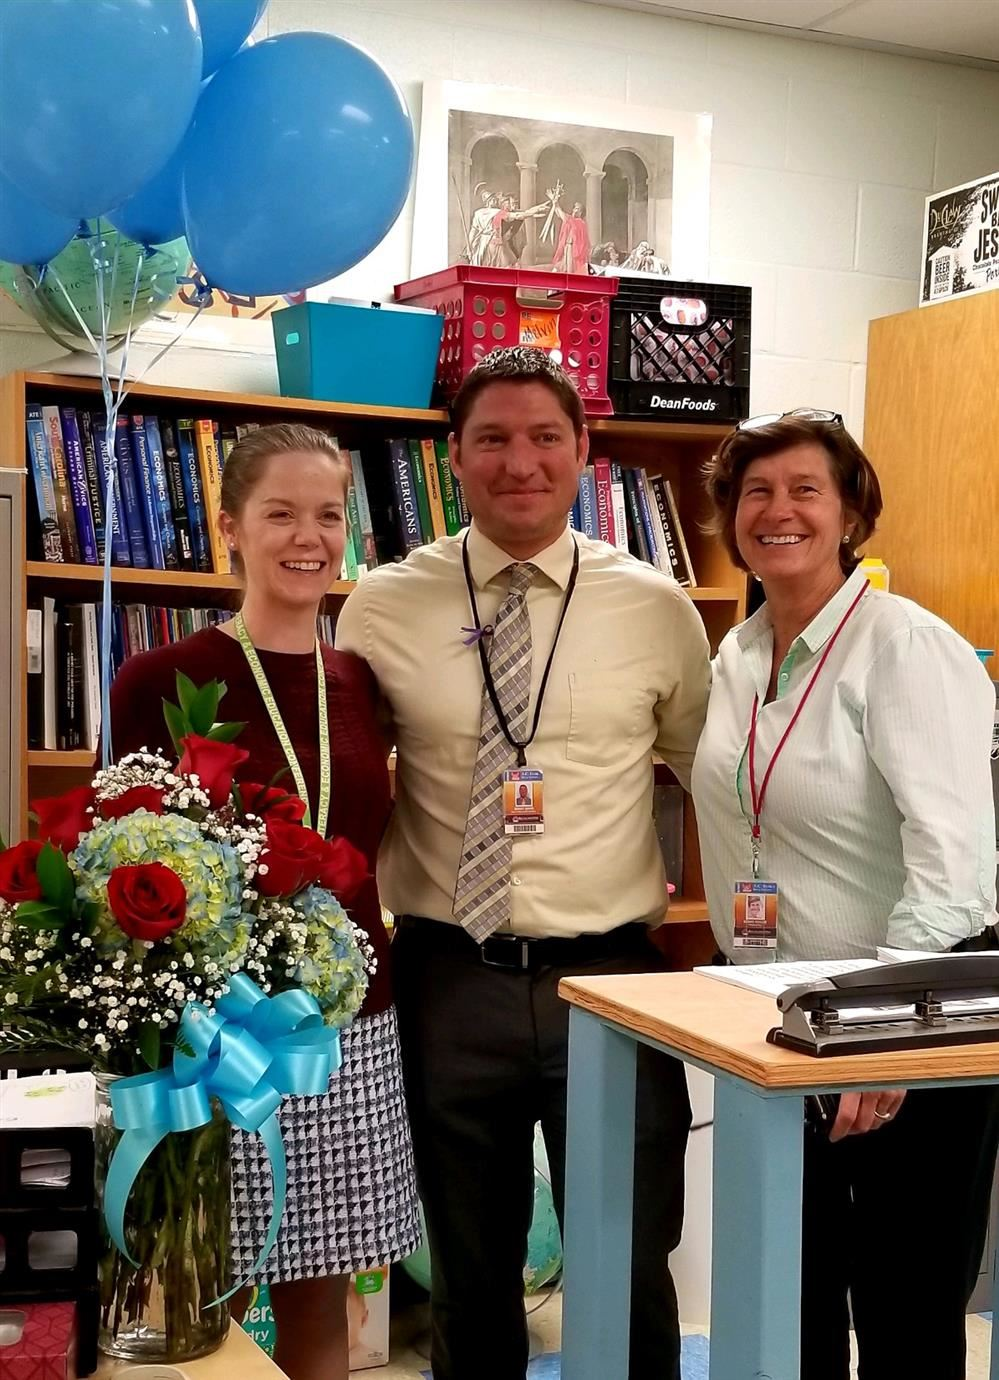 Mrs. Melvin Selected as Teacher of the Year